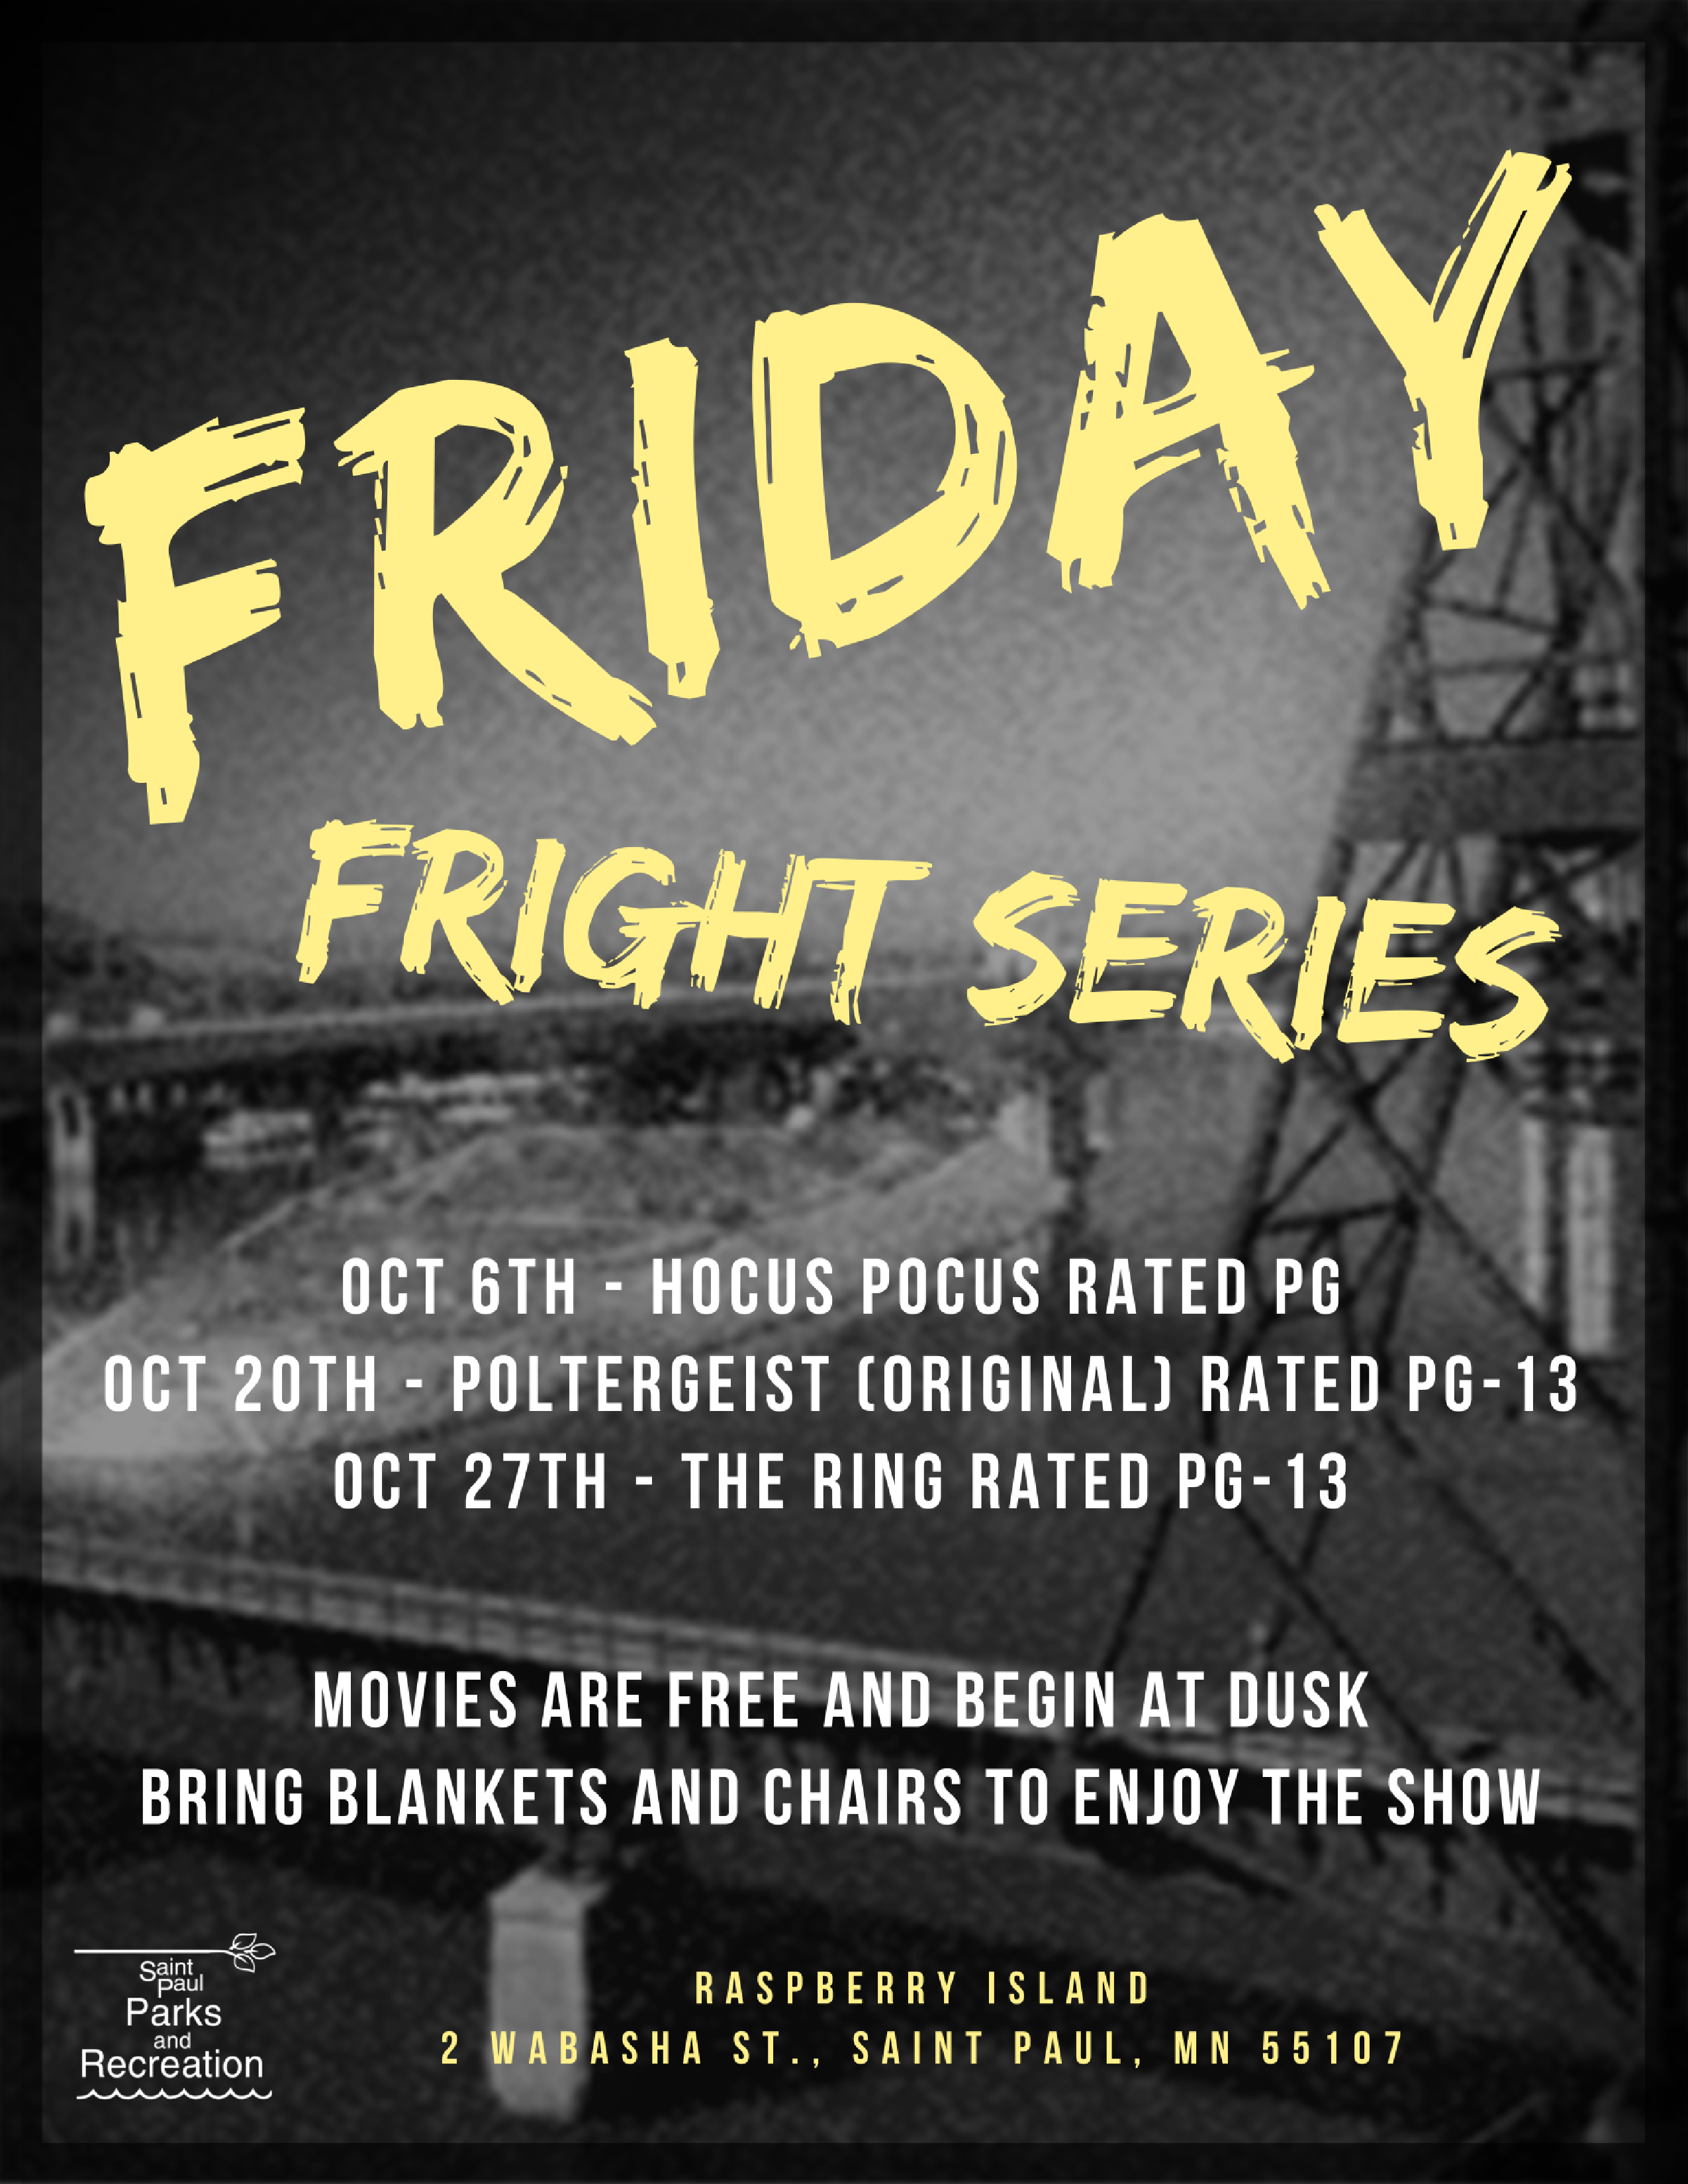 Parks Friday Fright Series Flyer 2017